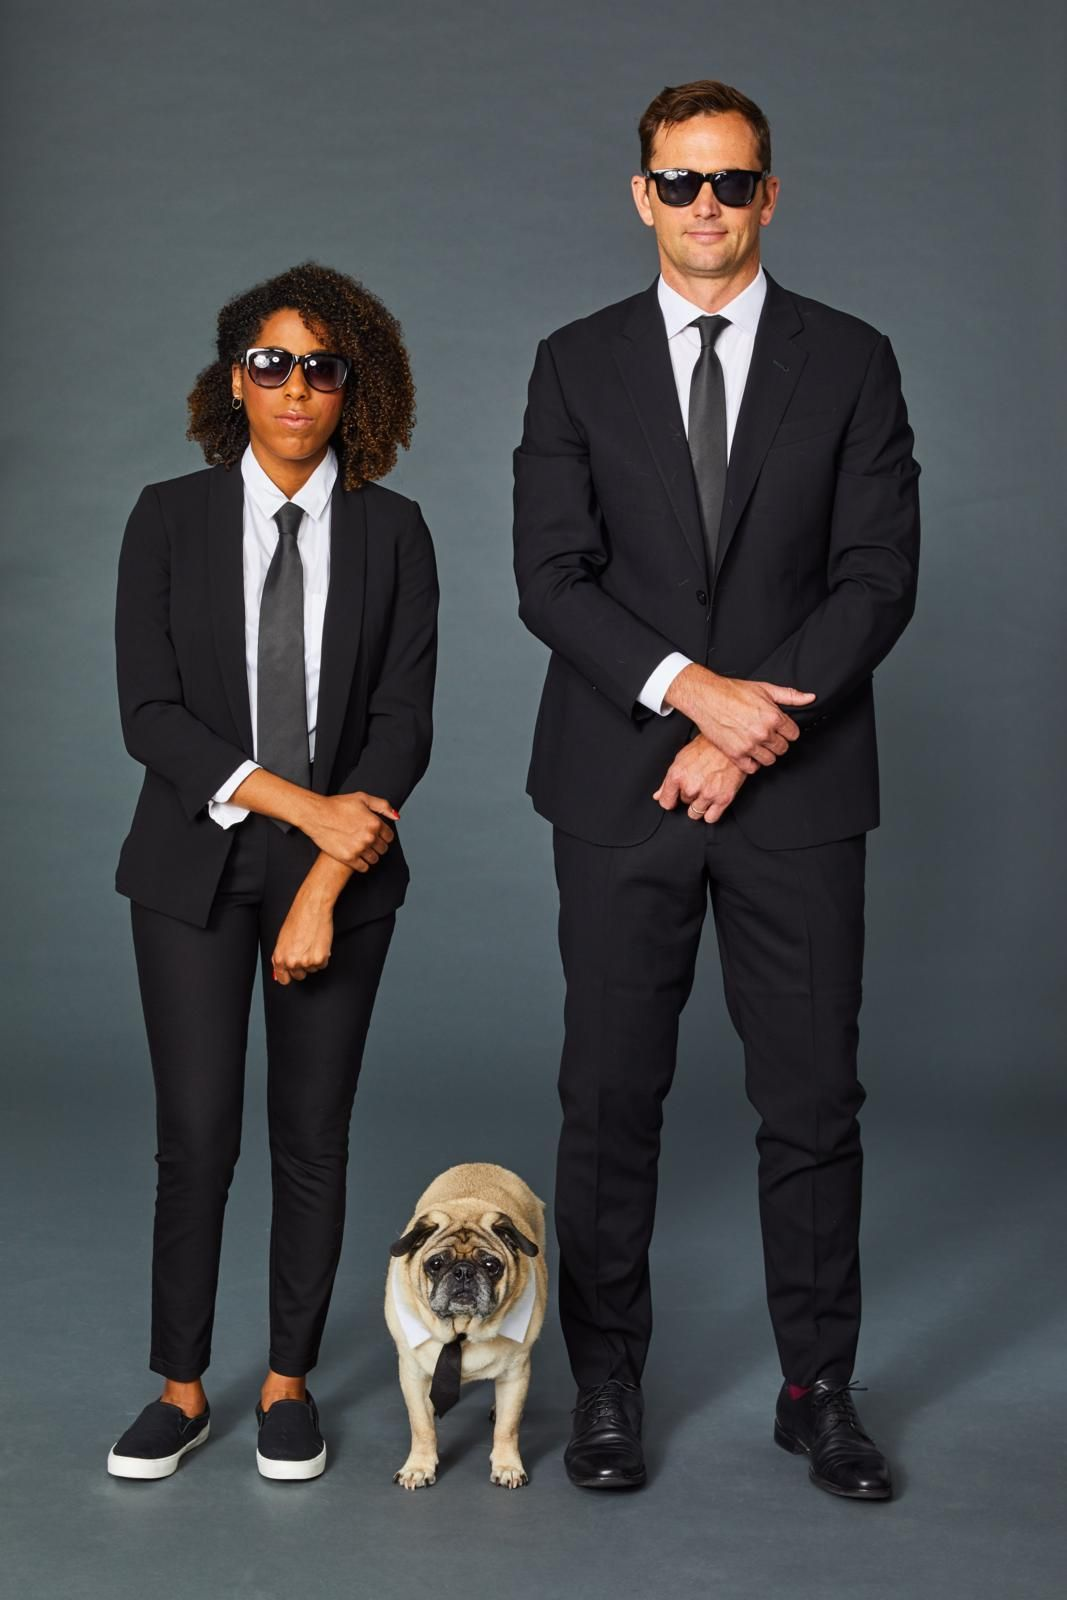 Men in Black Halloween Costumegoodhousemag in 2020 Black